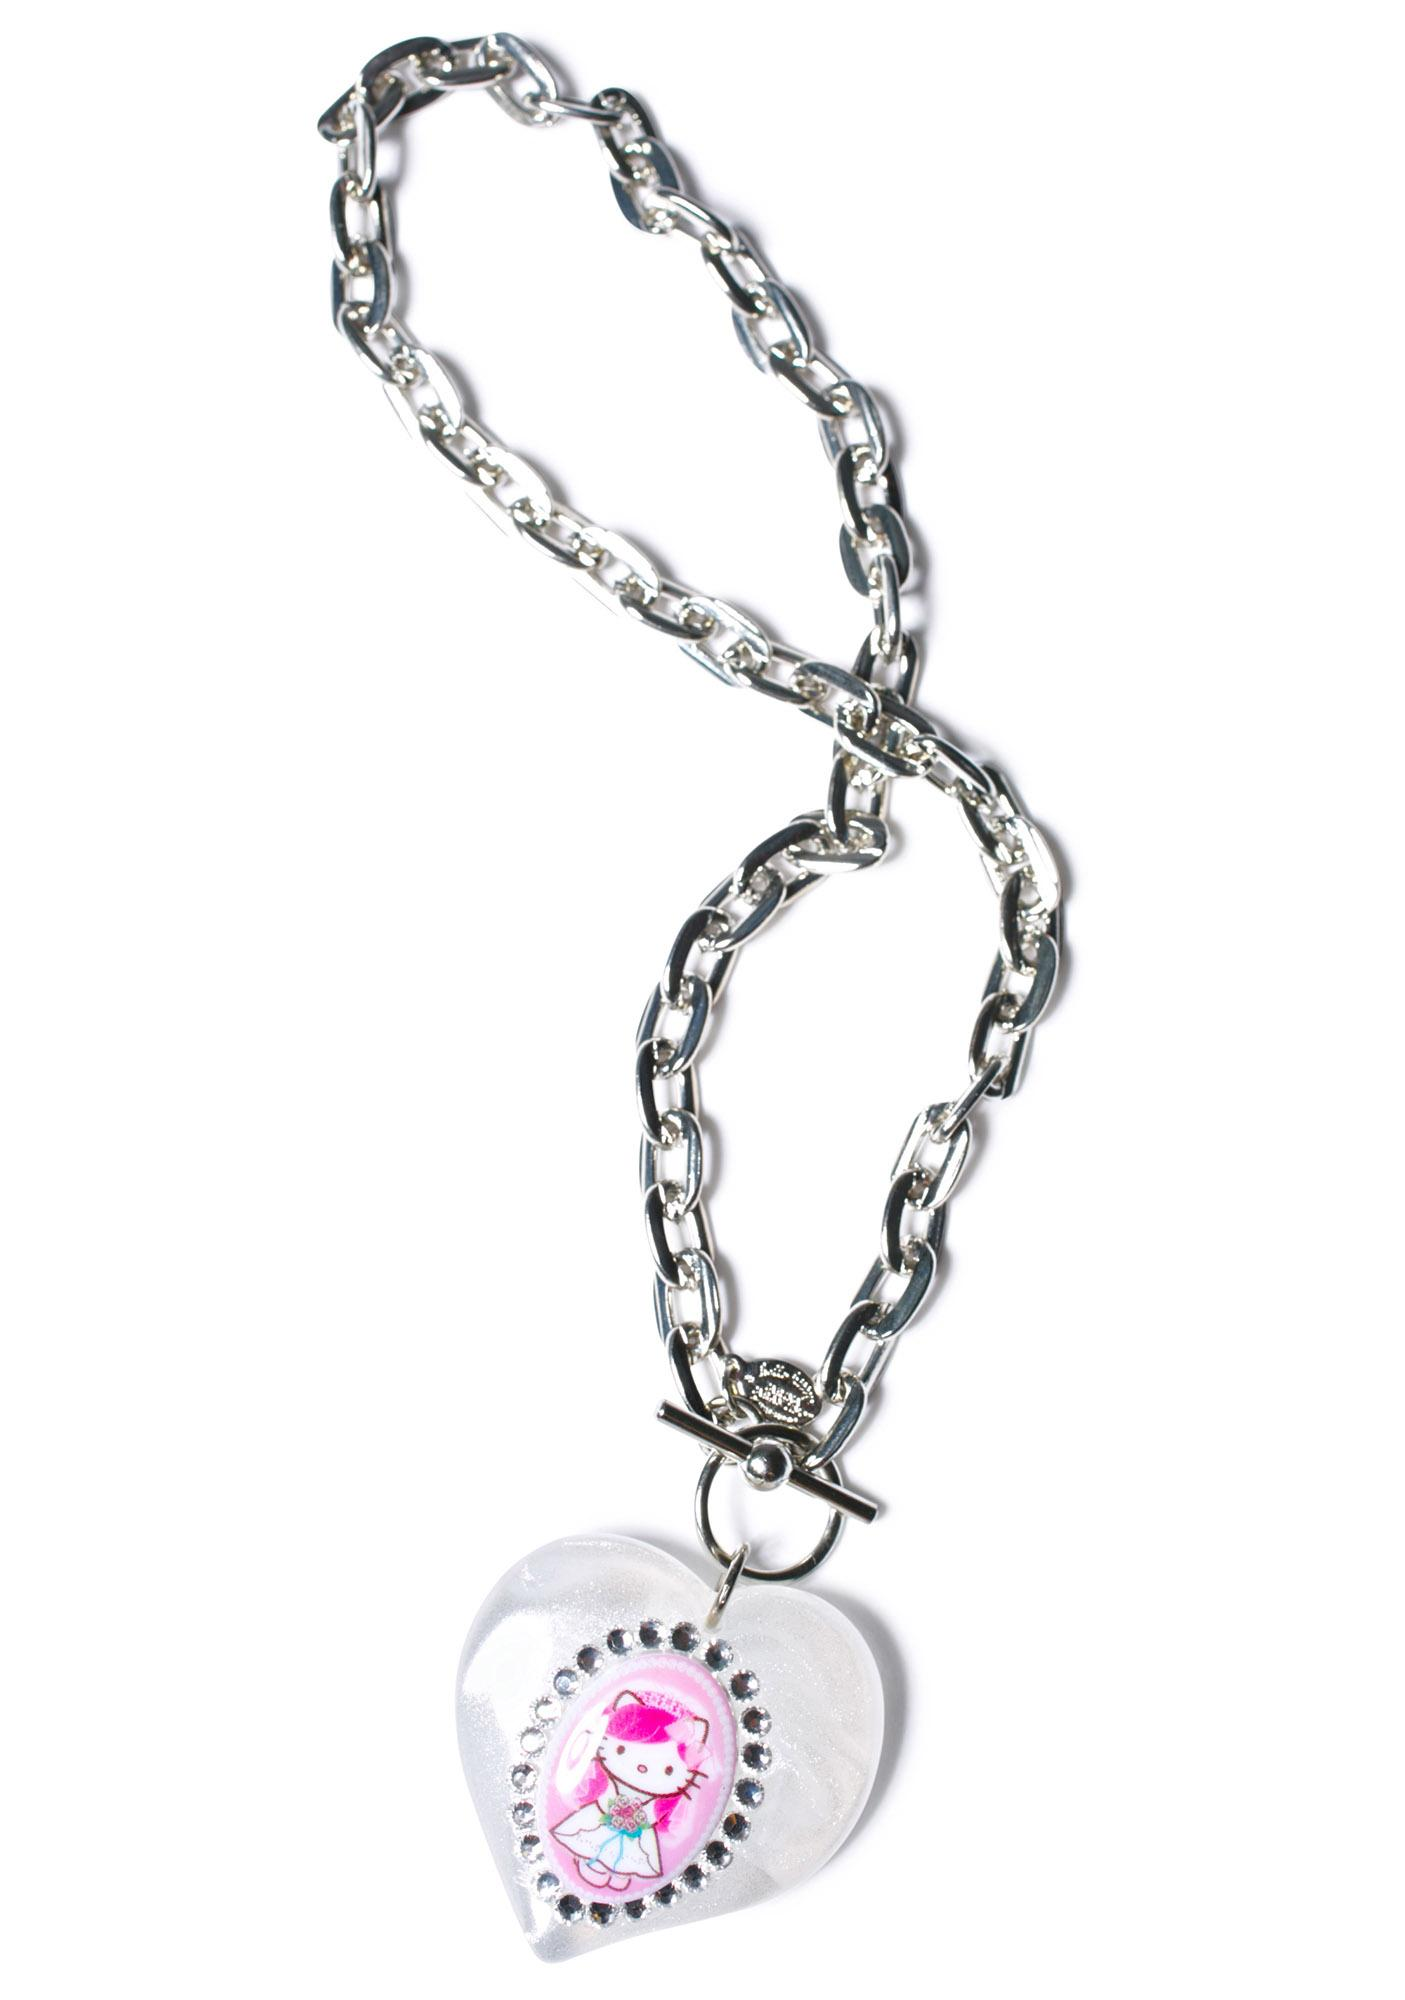 Tarina Tarantino Puff Heart Necklace